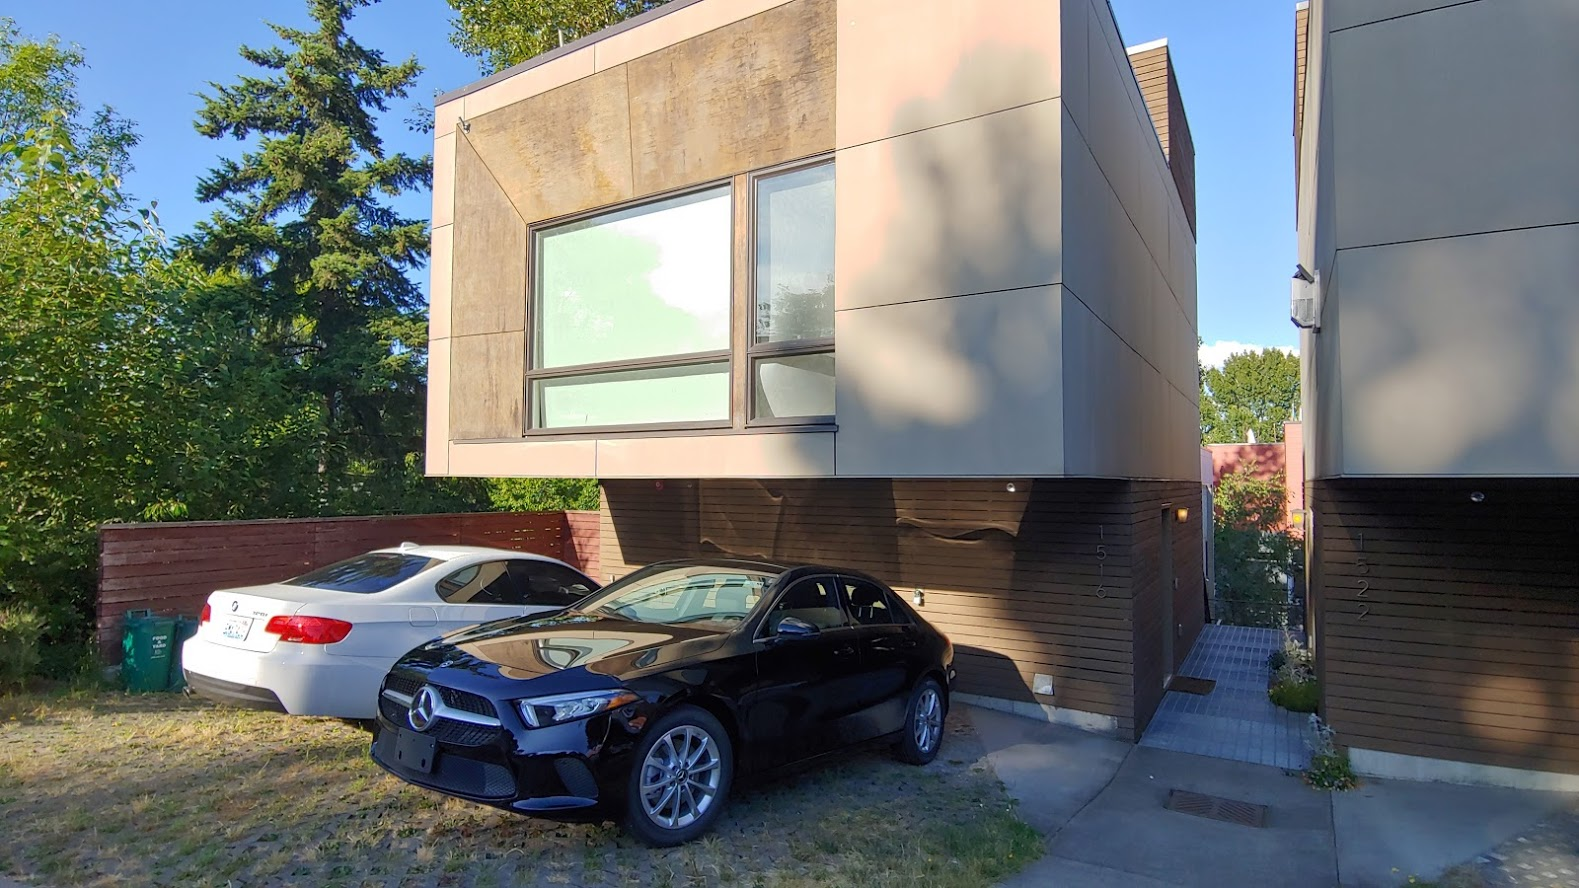 I stayed in this Airbnb, which is an infill development of 4 new houses in a single lot (2 in front and 2 in the back). 1 parking space required in each house at the front.